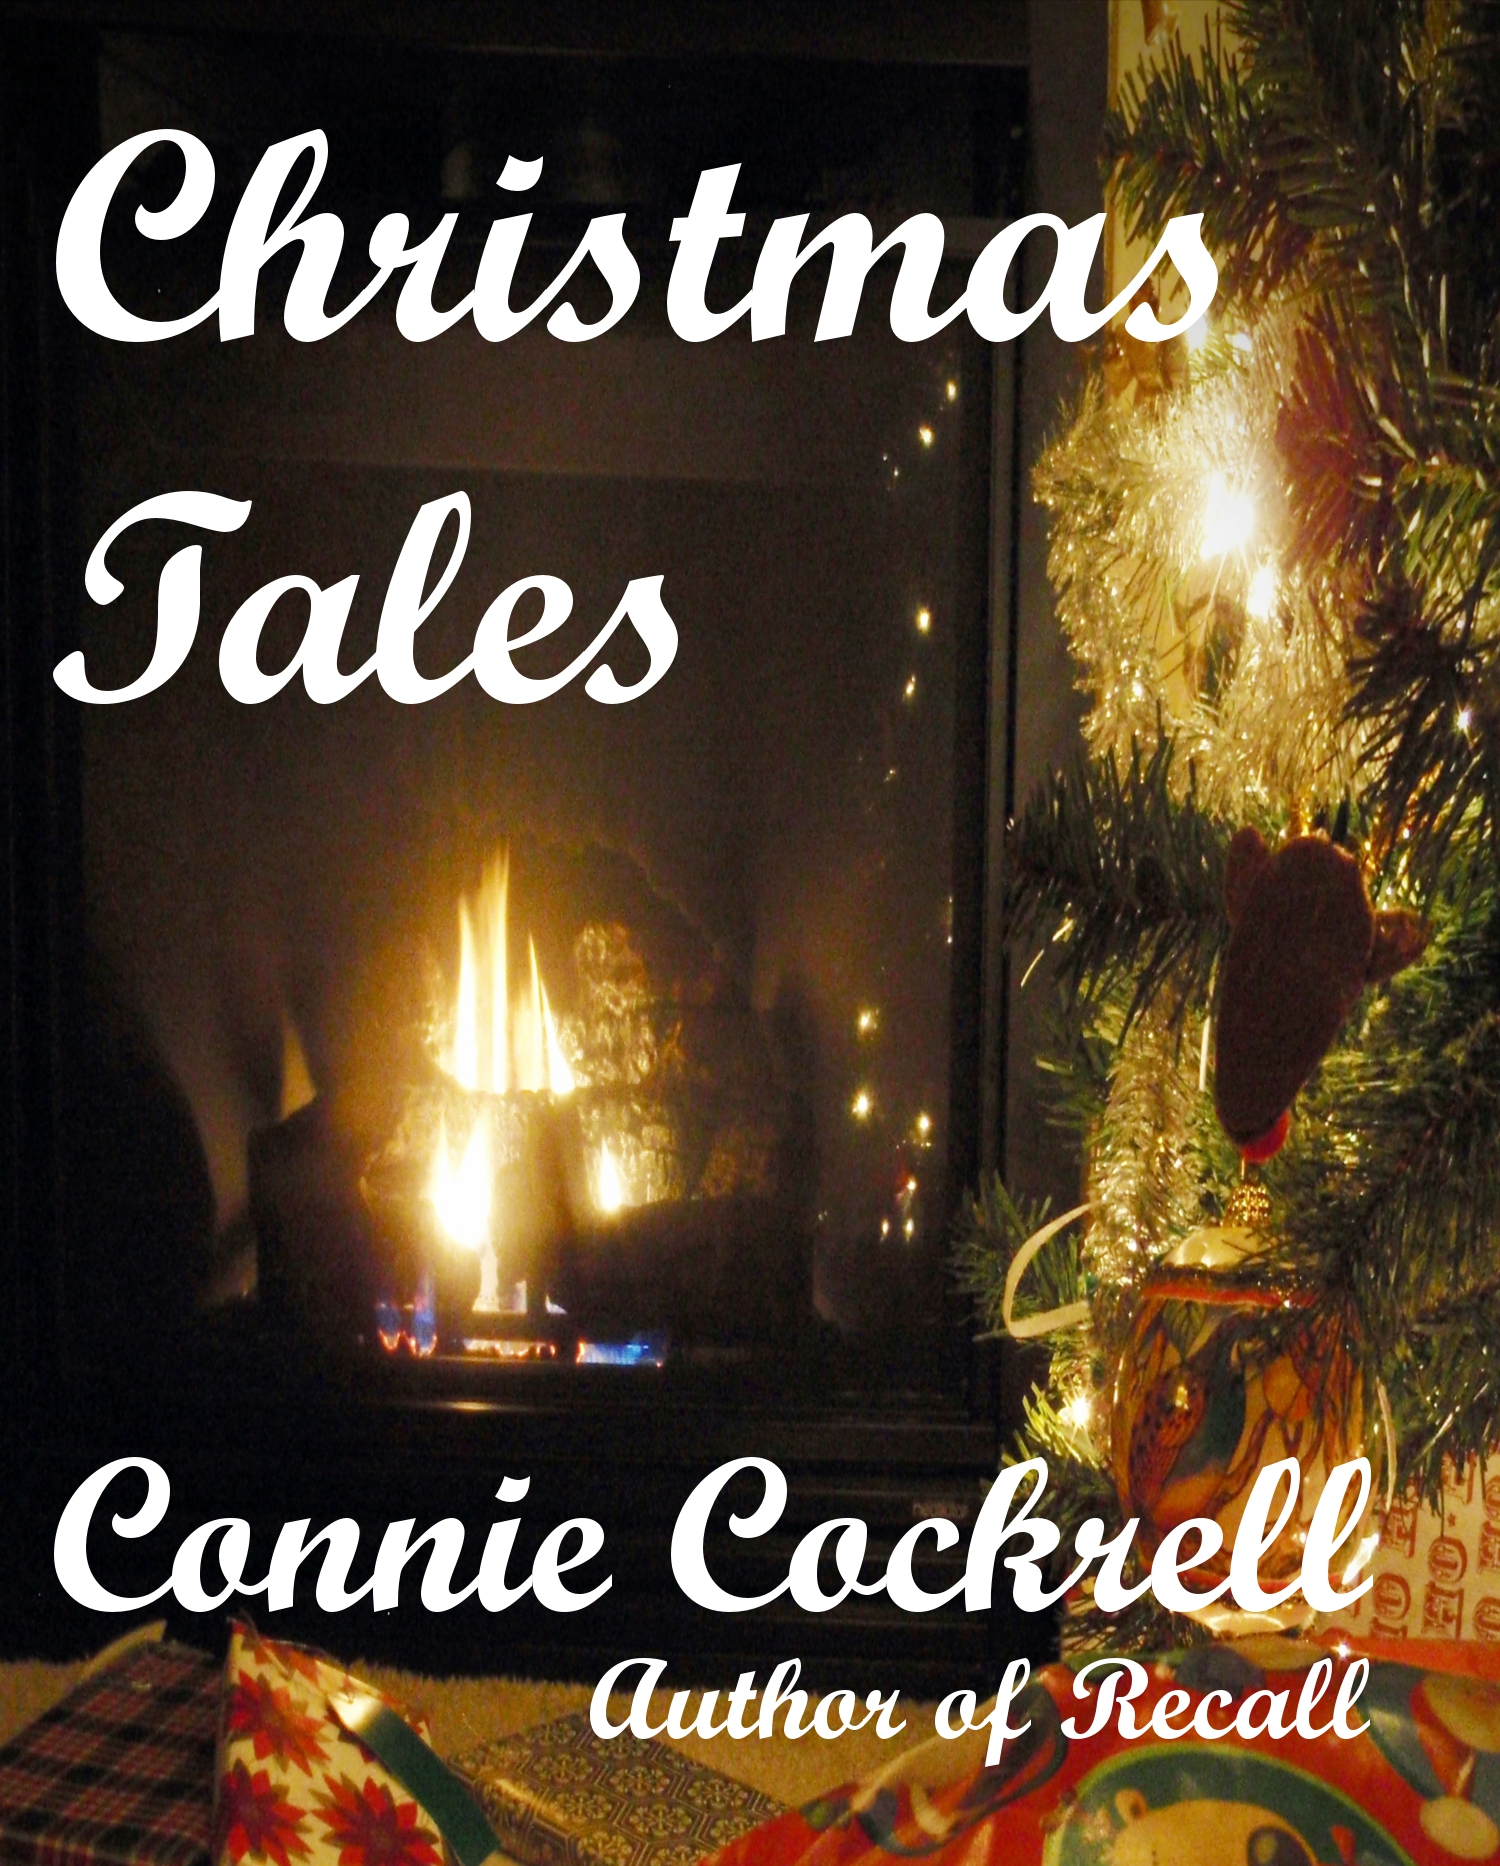 October 2013 conniesrandomthoughts using christmas tales keeps the theme going dont you think take a look at the draft of the book cover what do you think fandeluxe Gallery